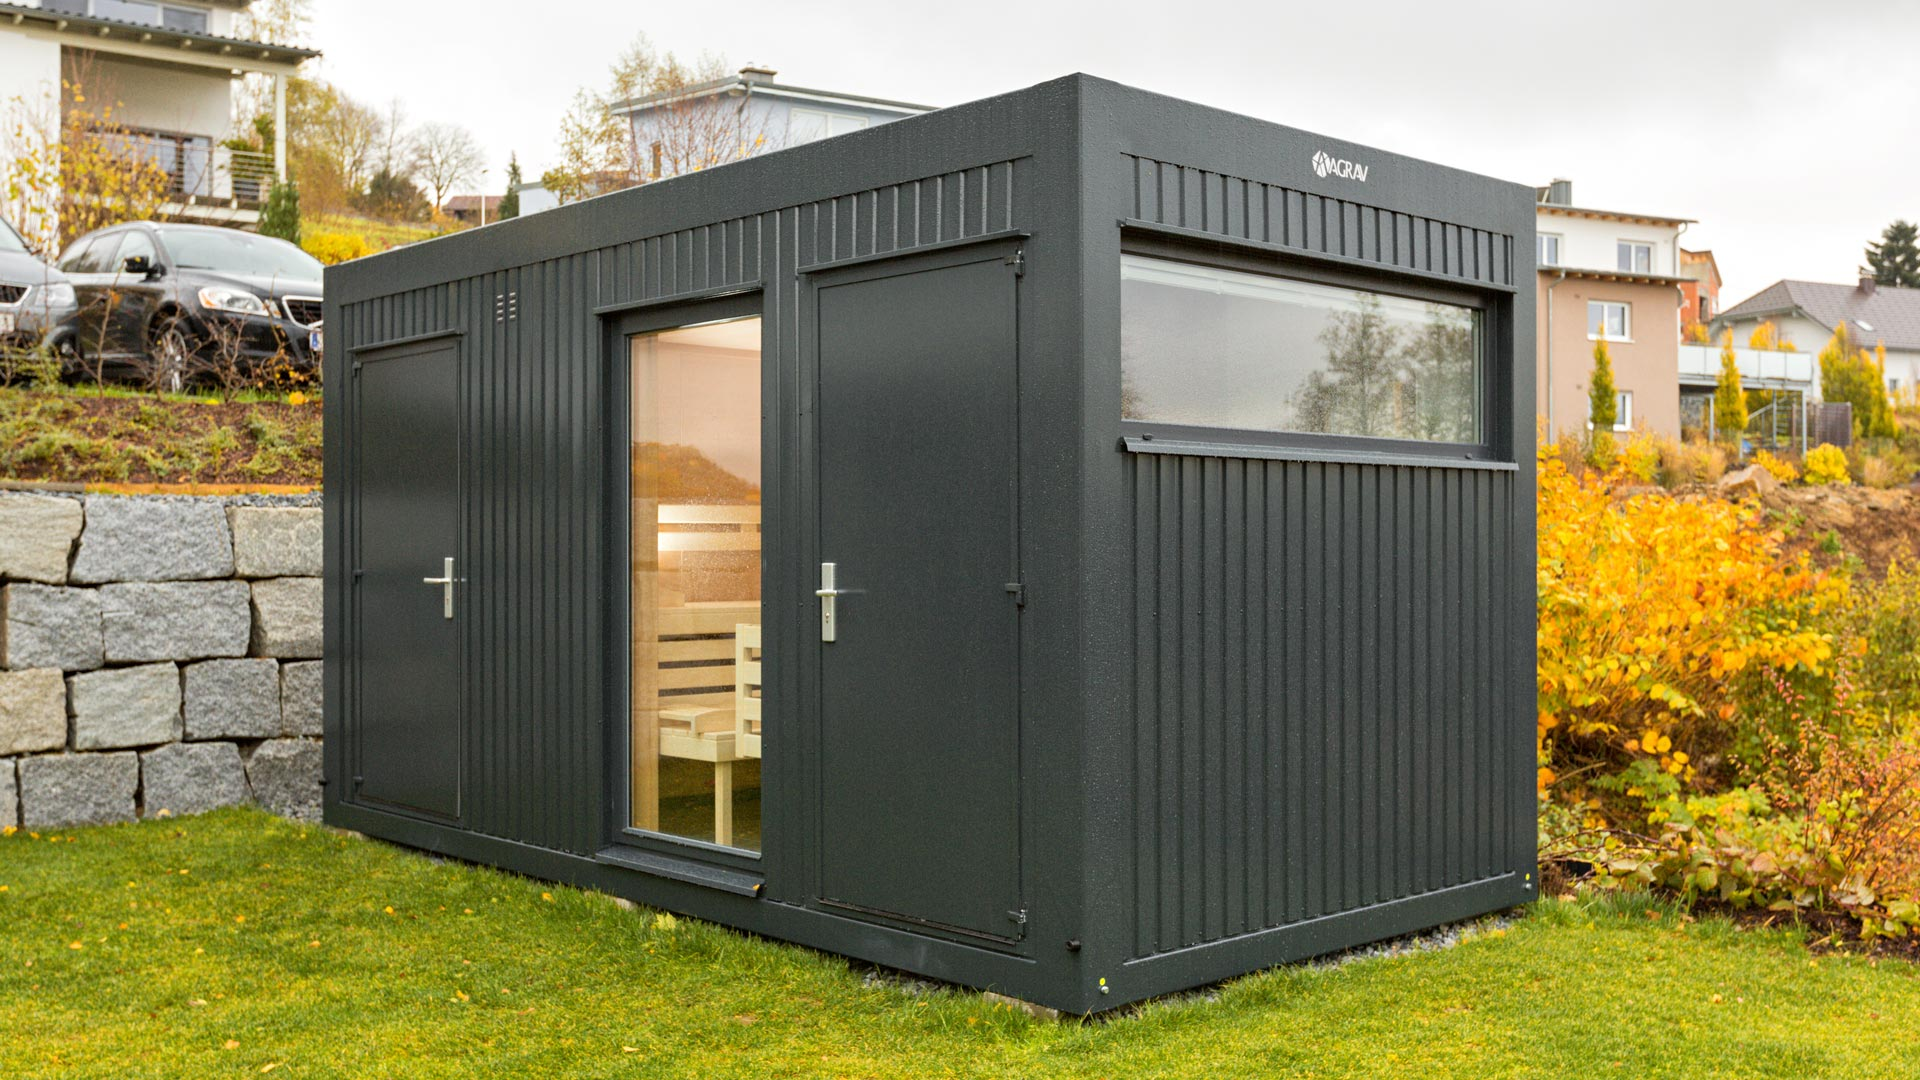 wohncontainer agrav container modulsysteme gmbh. Black Bedroom Furniture Sets. Home Design Ideas